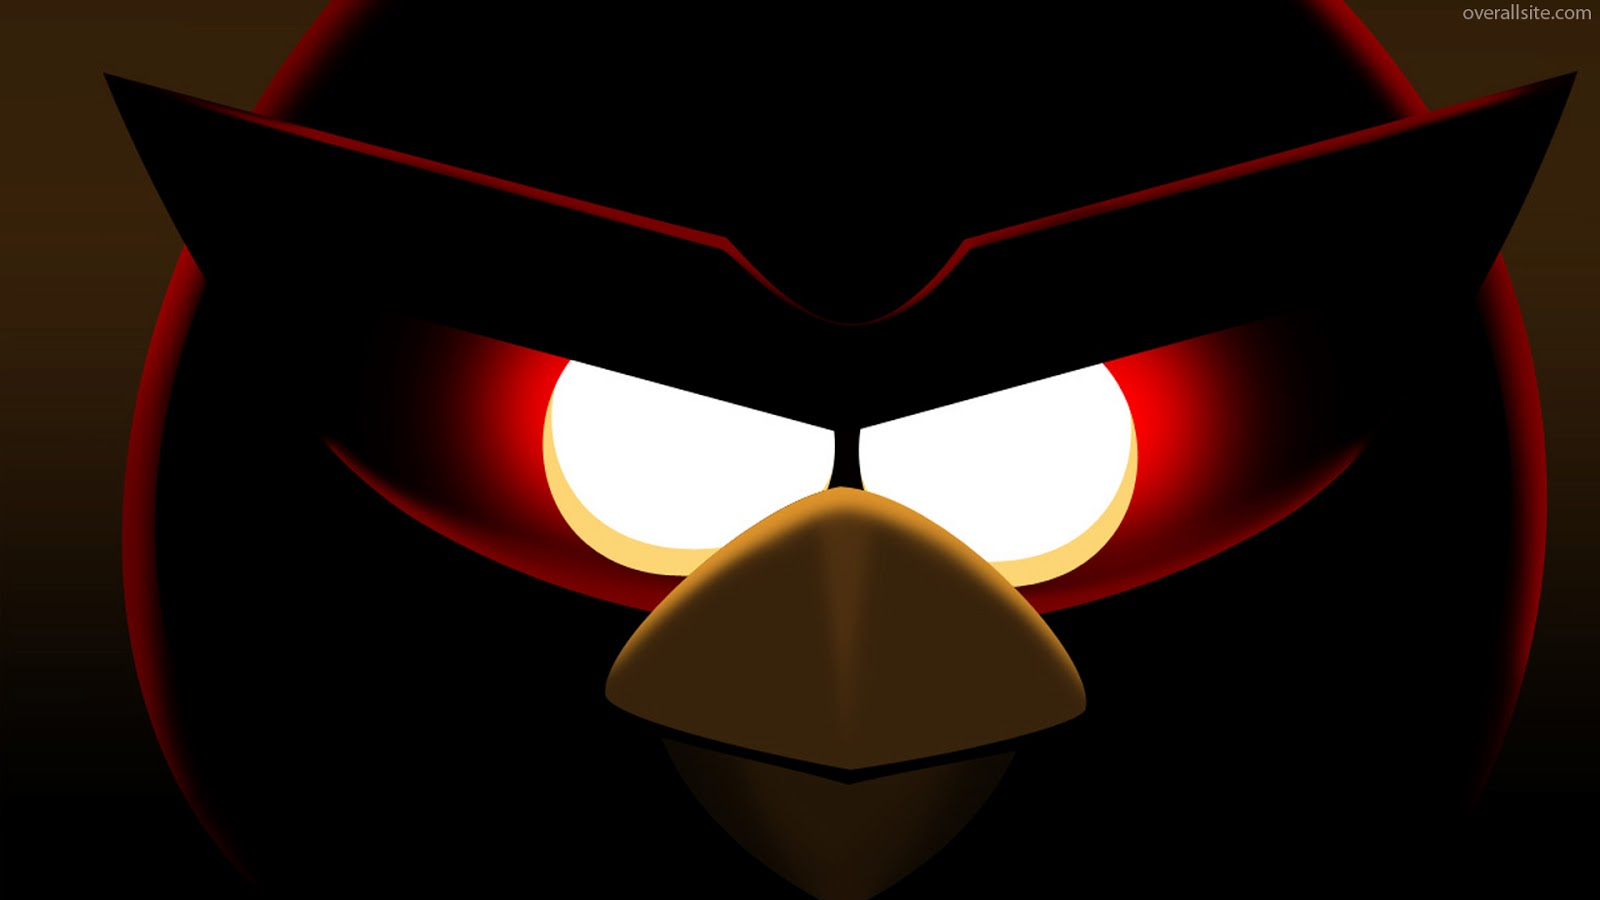 WALLPAPERS HD angry birds space wallpaper hd HD 1600x900